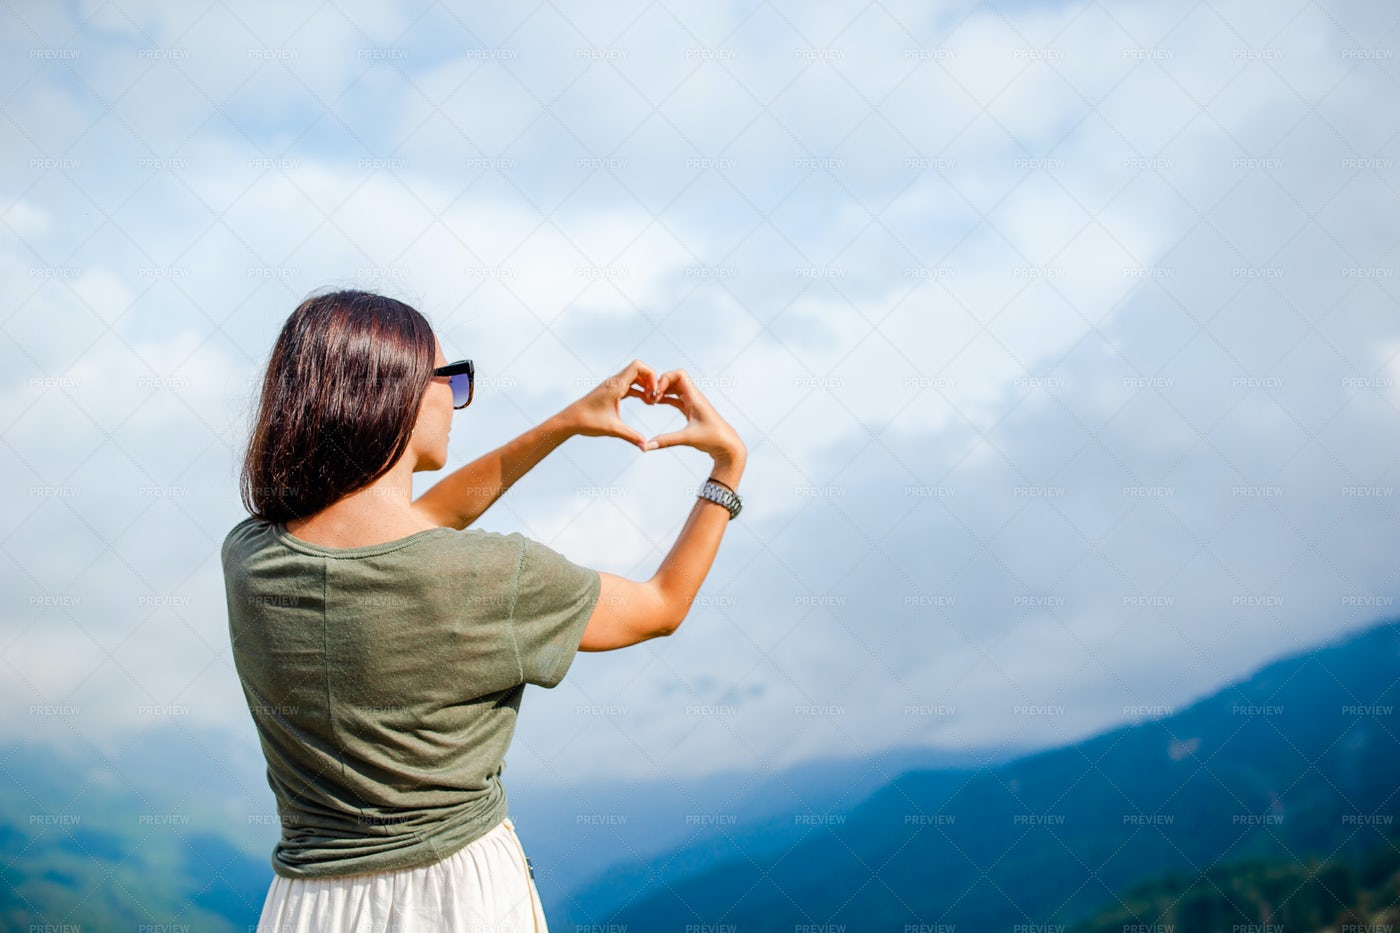 Heart Gesture To Mountains: Stock Photos